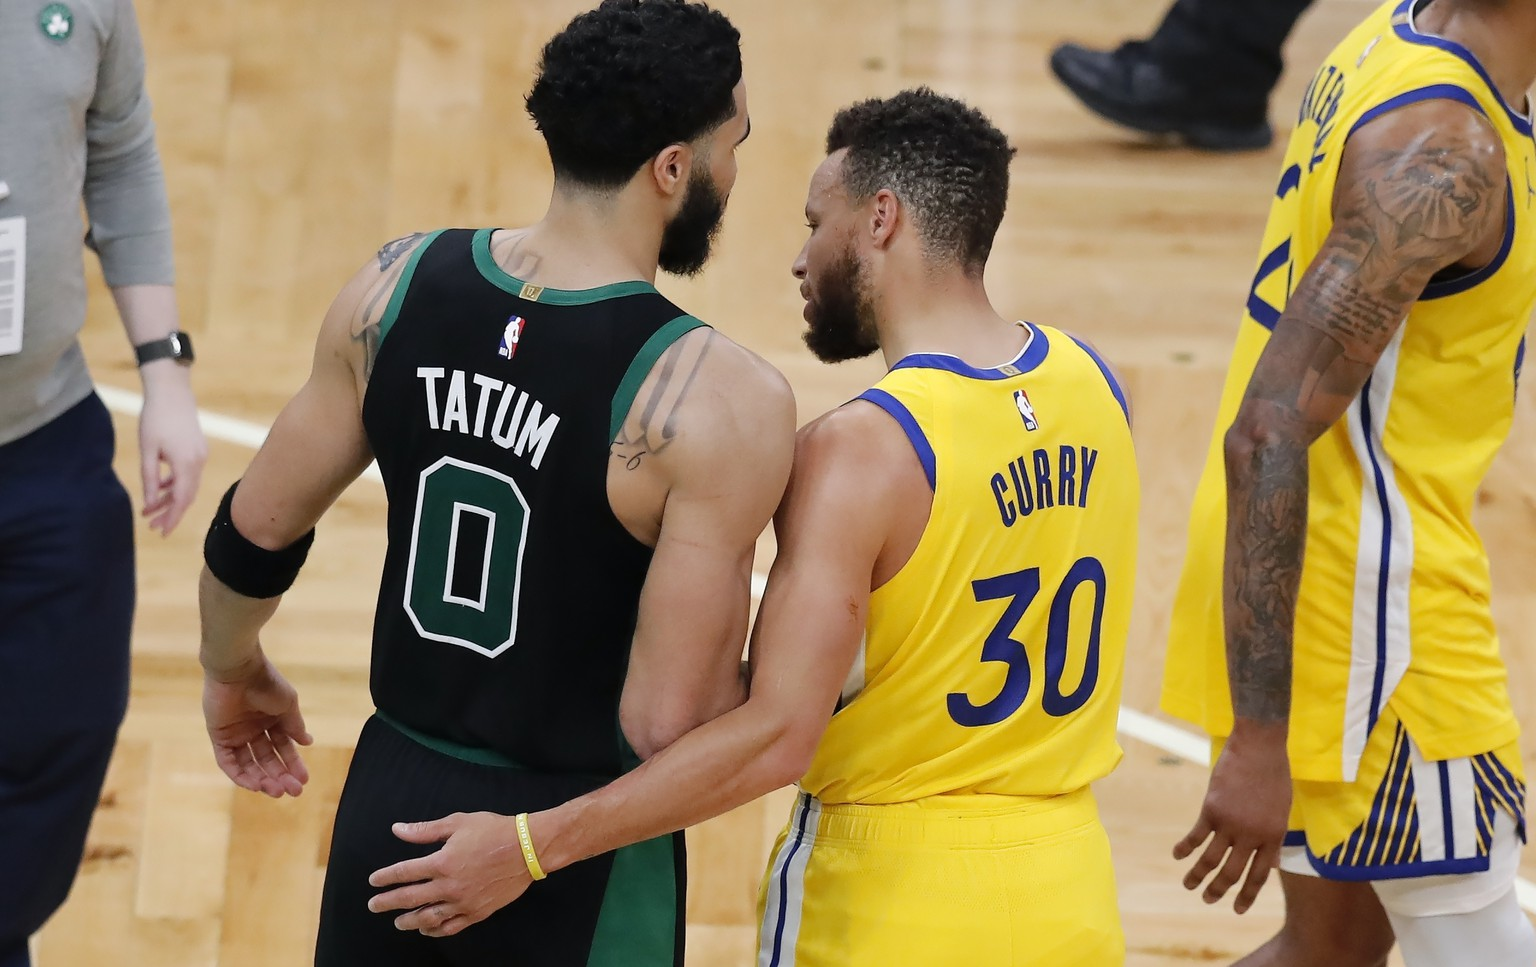 Boston Celtics' Jayson Tatum (0) and Golden State Warriors' Stephen Curry (30) talk following an NBA basketball game, Saturday, April 17, 2021, in Boston. (AP Photo/Michael Dwyer) Jayson Tatum,Stephen Curry